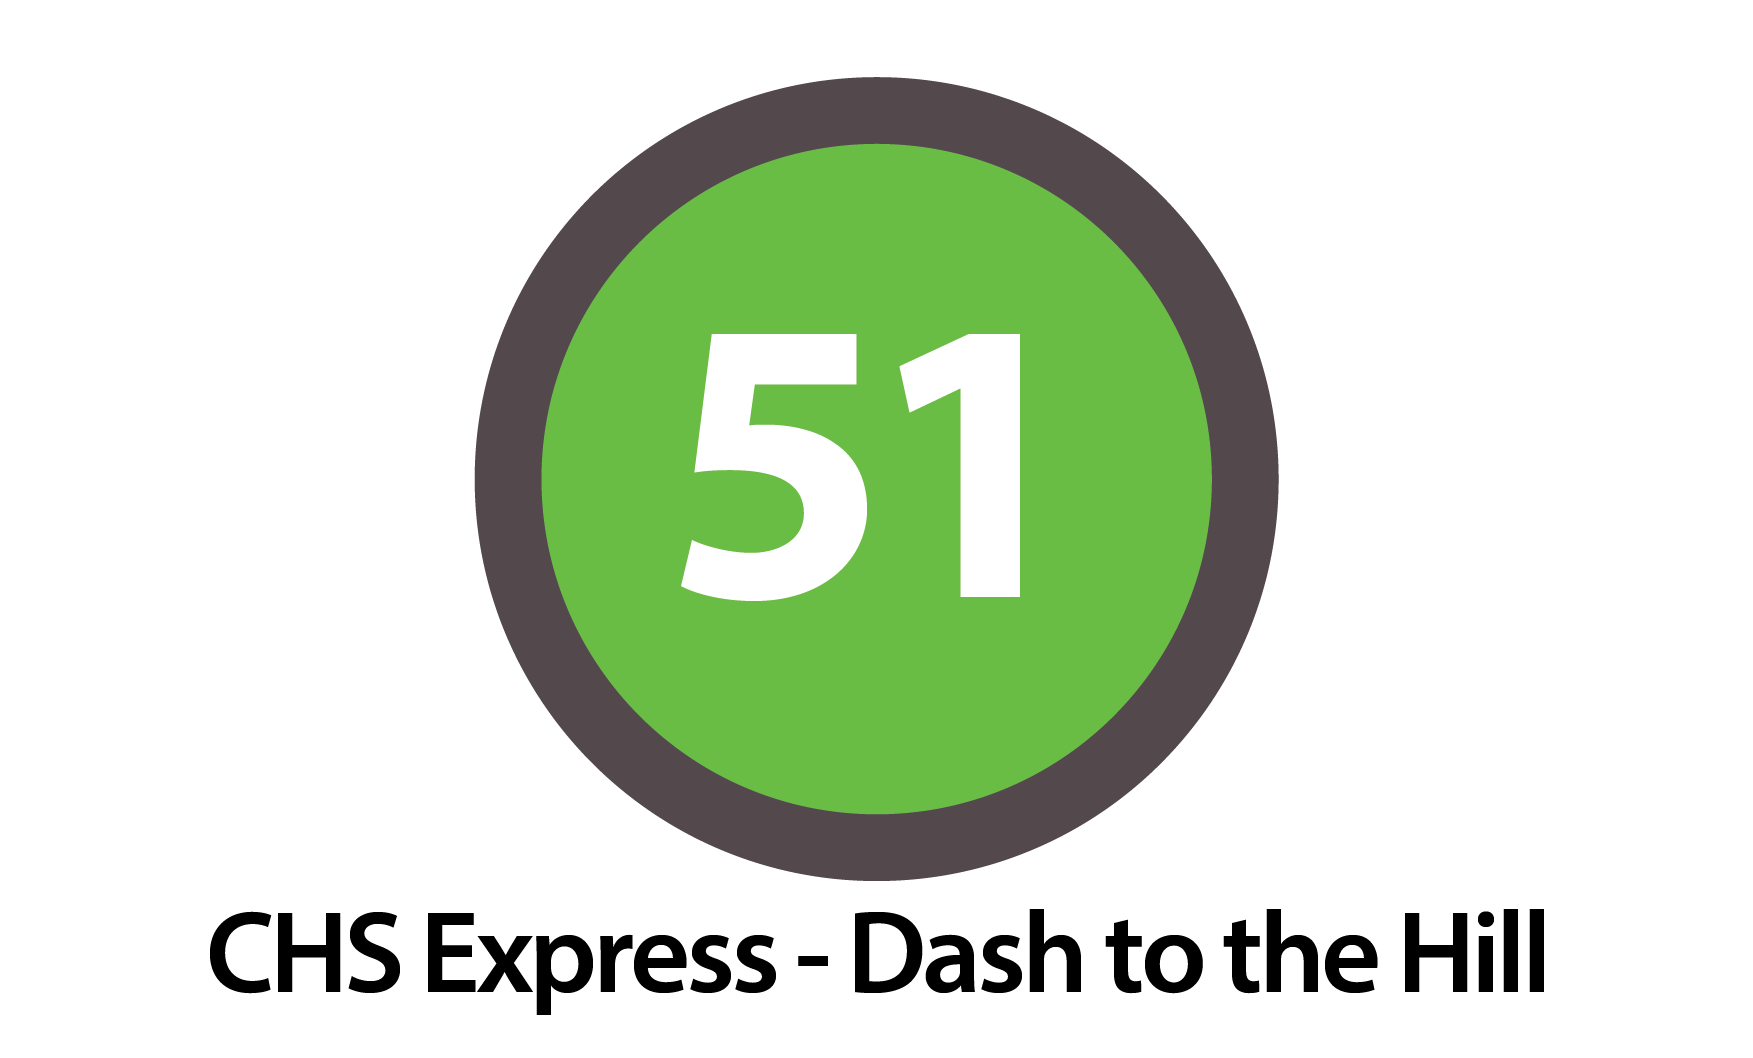 Route 51 button